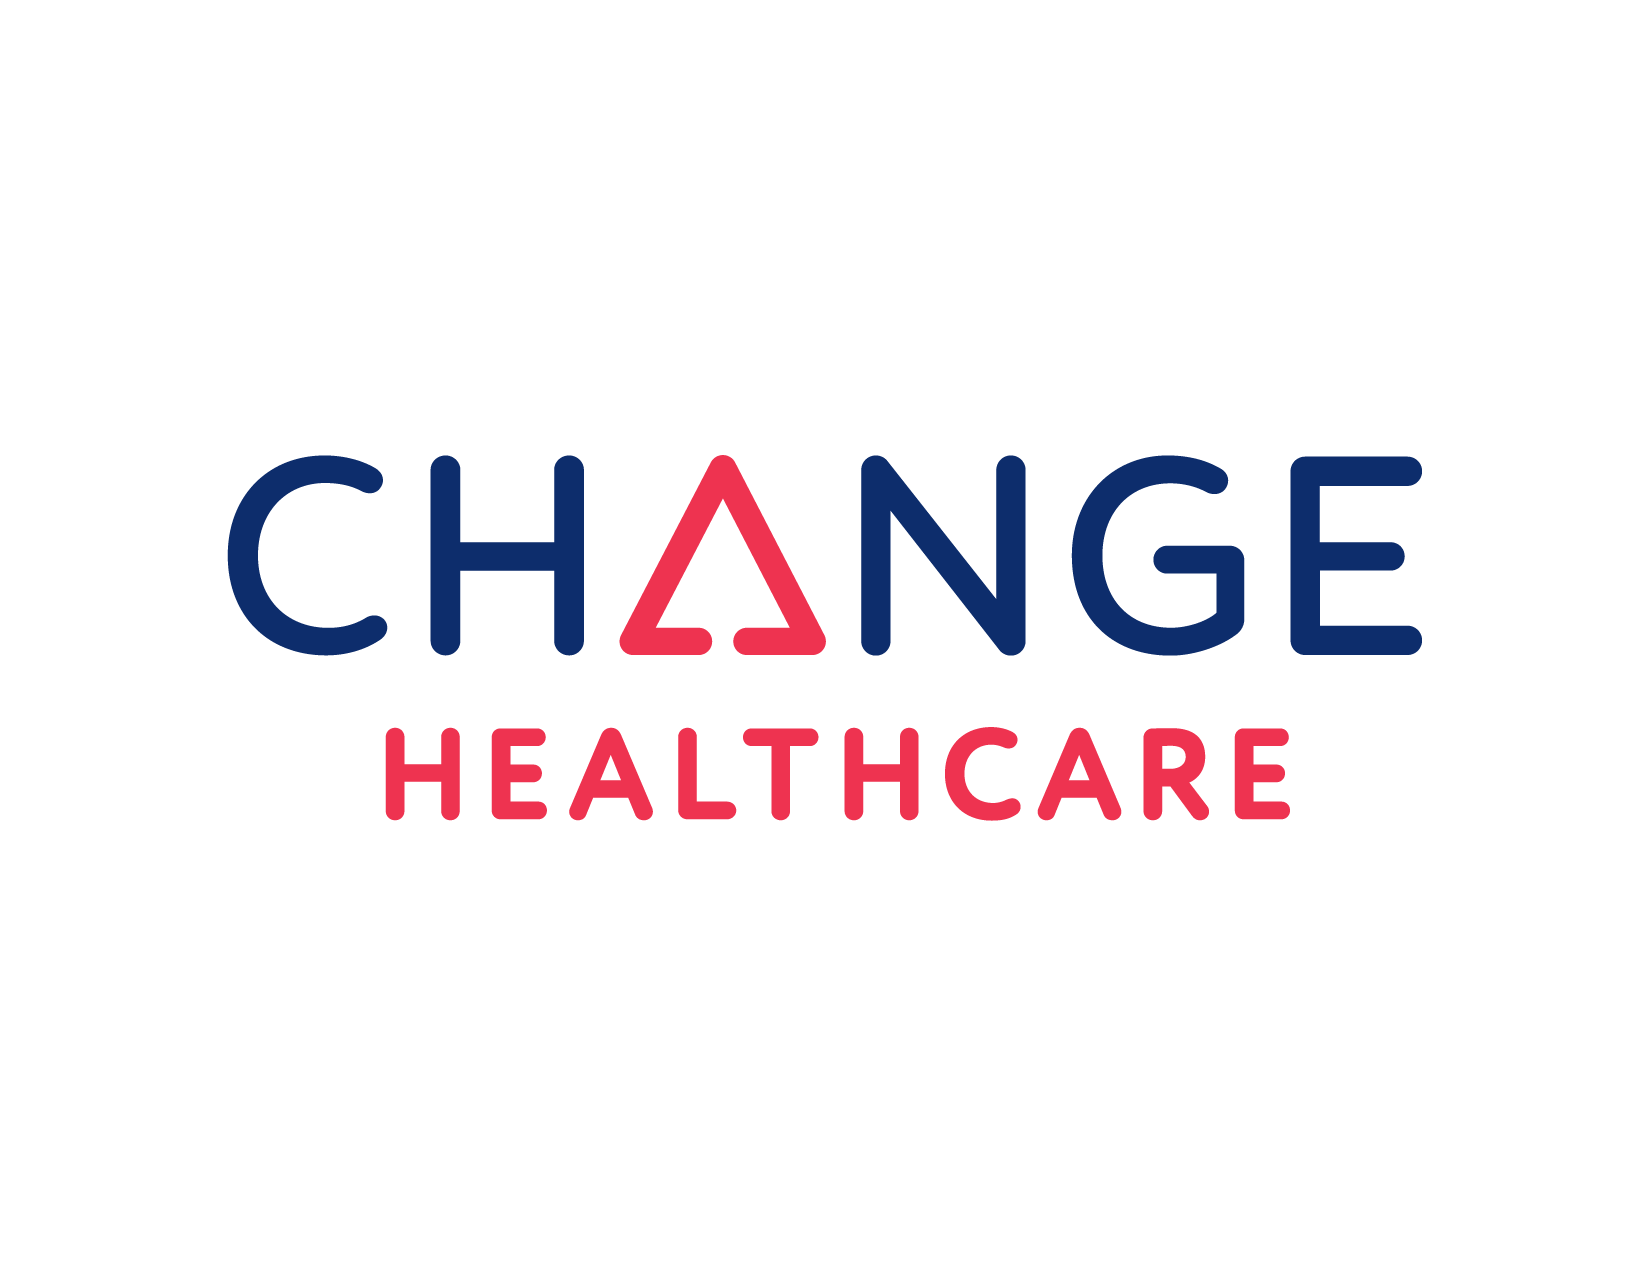 Change Healthcare_red_blue_logo_CMYK-01